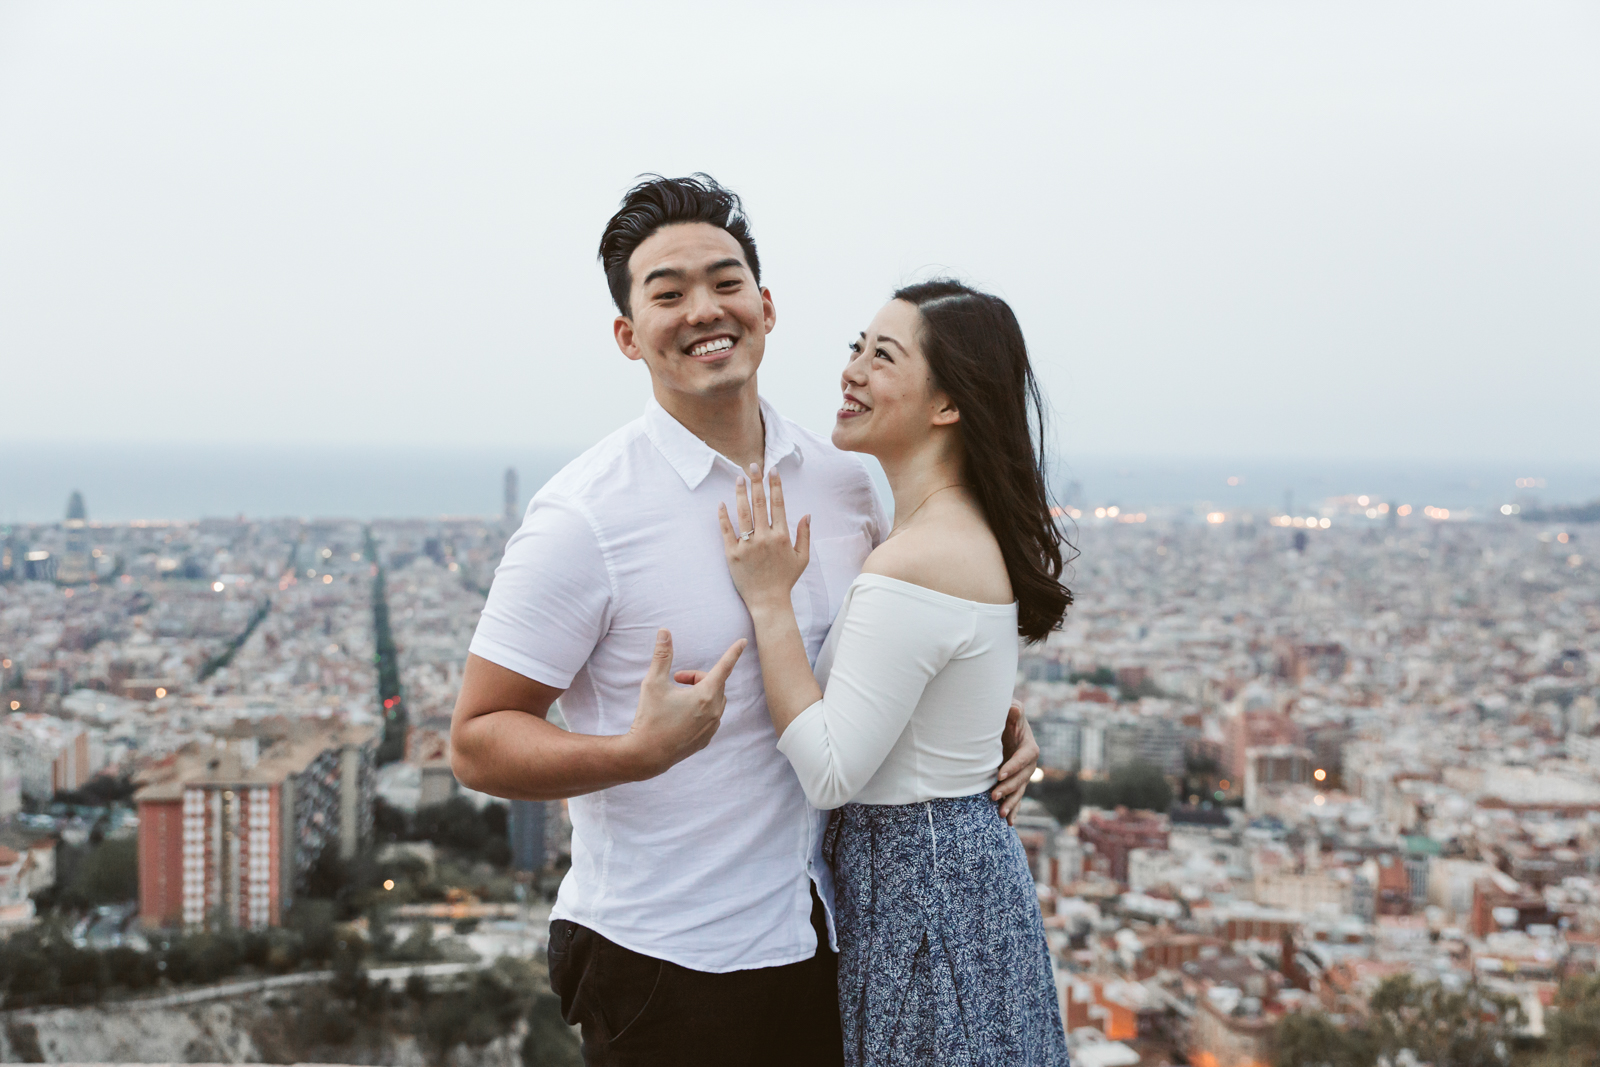 Brian + Jessica | Surprise proposal at the Bunkers